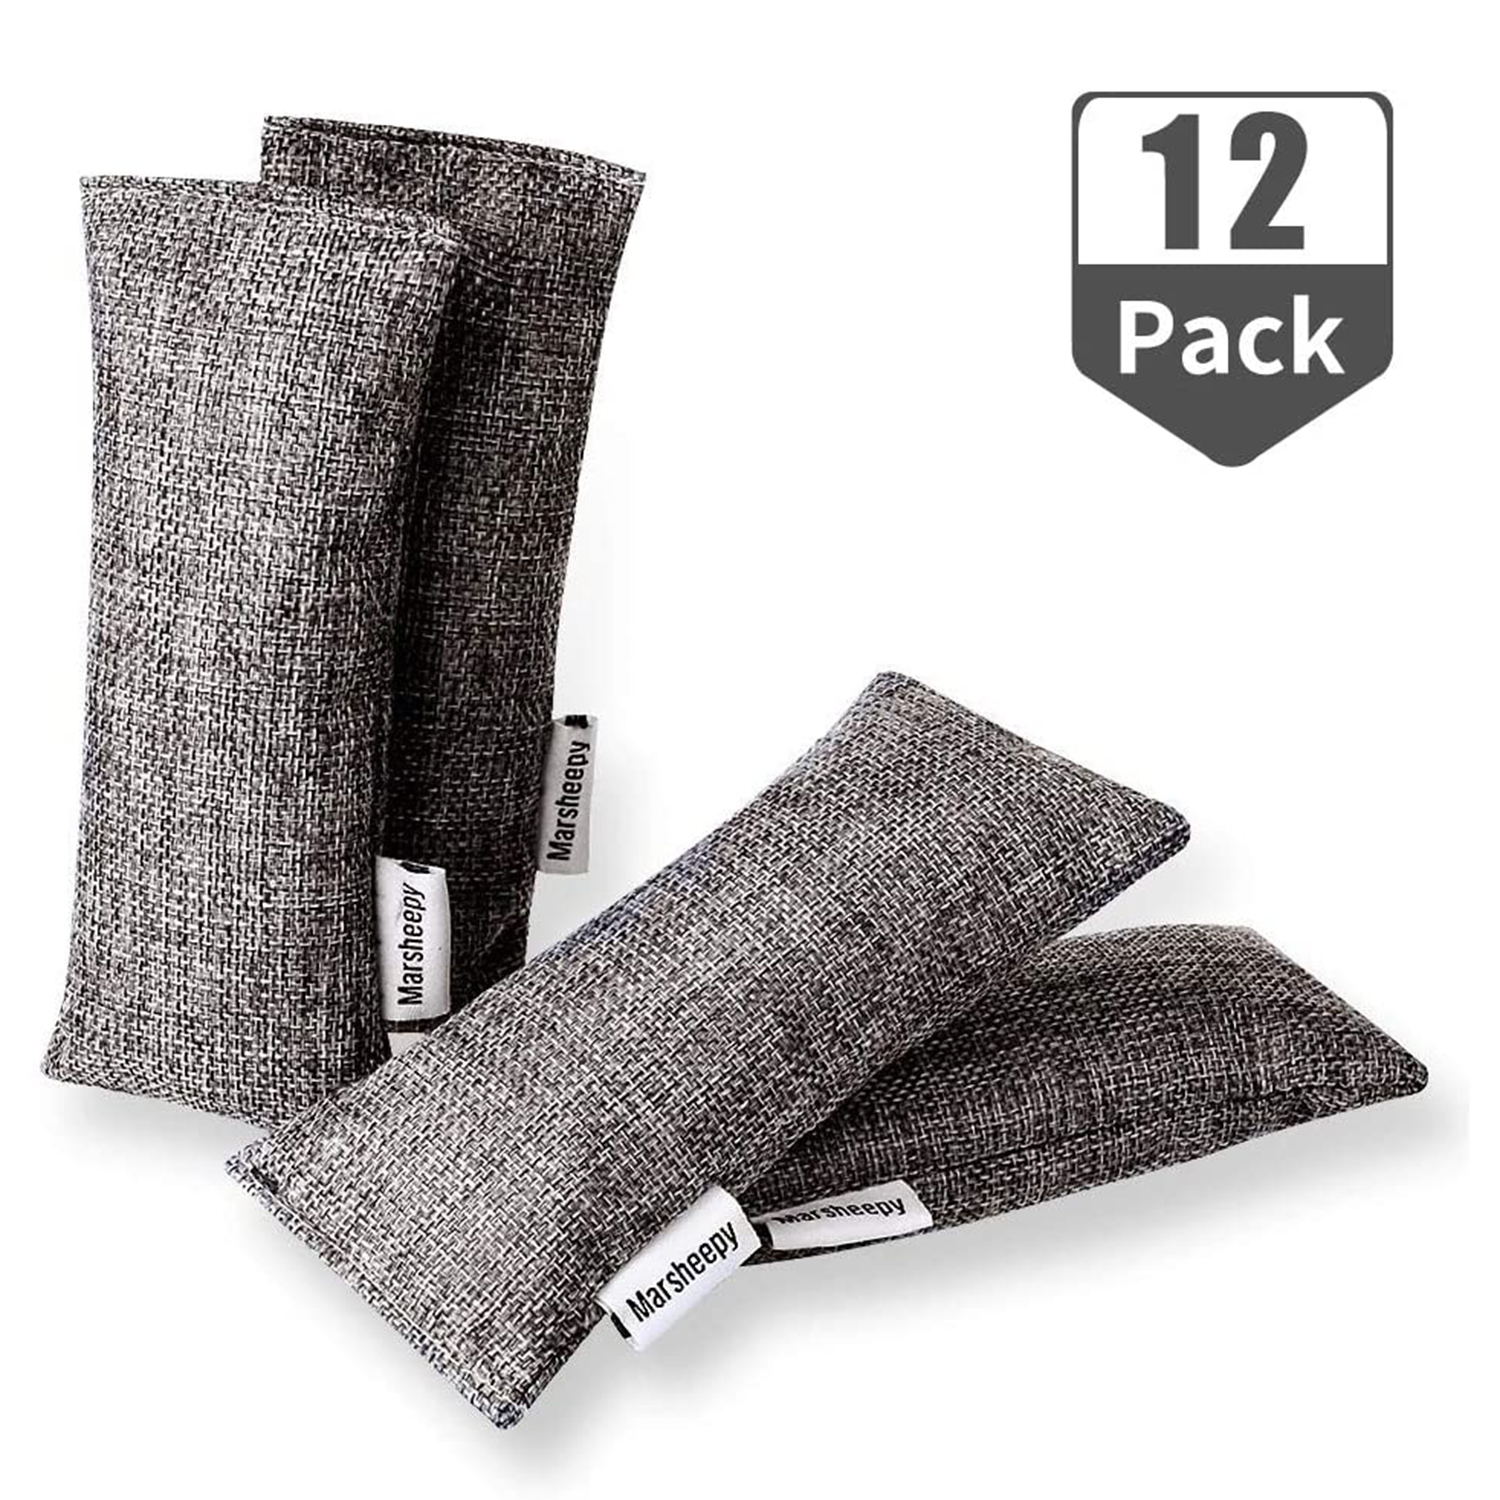 Marsheepy 12 Pack Bamboo Charcoal Bags and Charcoal Odor Absorber